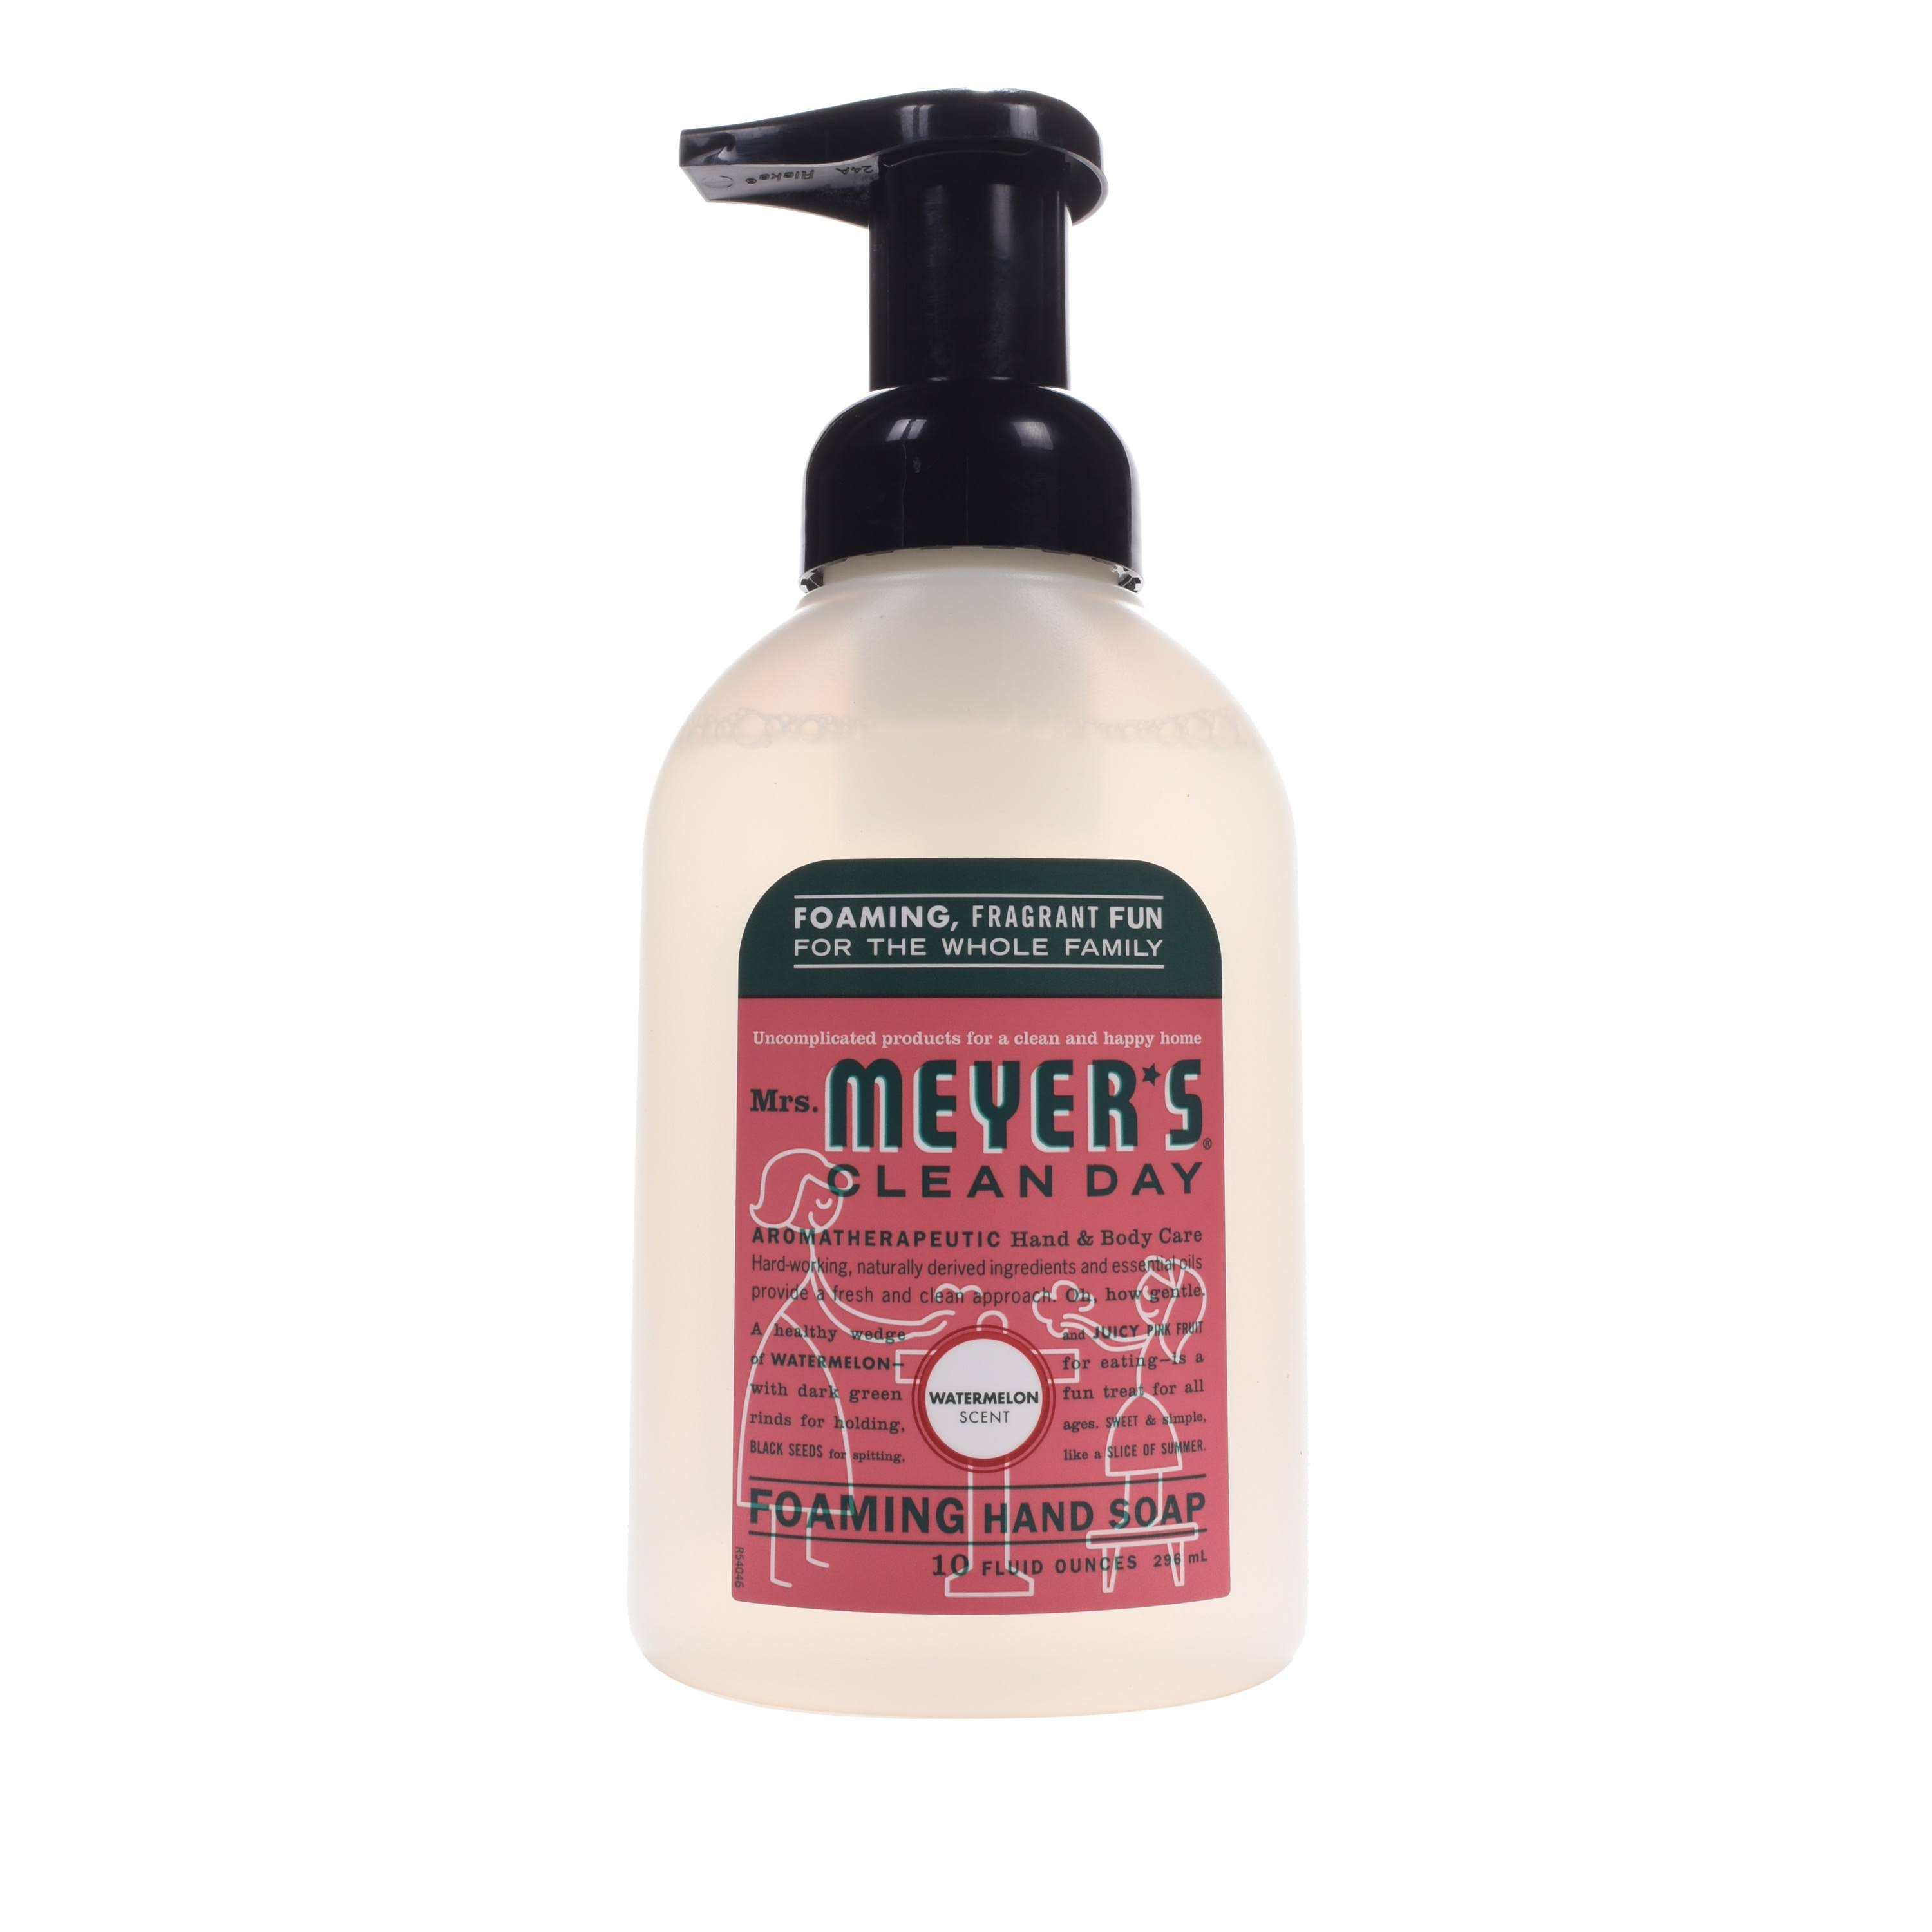 Mrs Meyer's Clean Day Foaming Hand Soap - Watermelon, 10oz